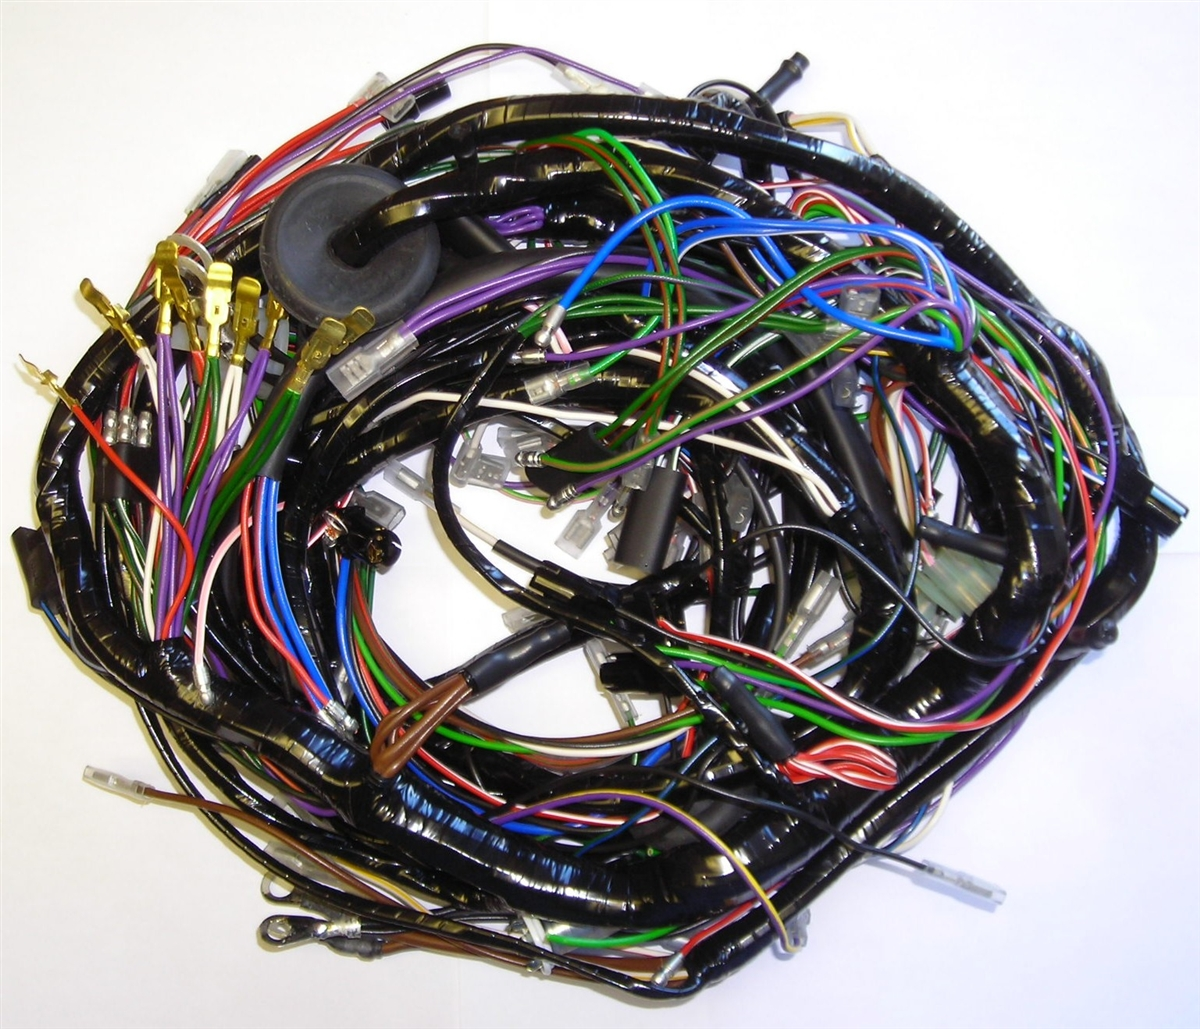 1523 2?1354101756 spitfire 1500 main wiring harness 73 triumph spitfire 1500 wiring harness at aneh.co